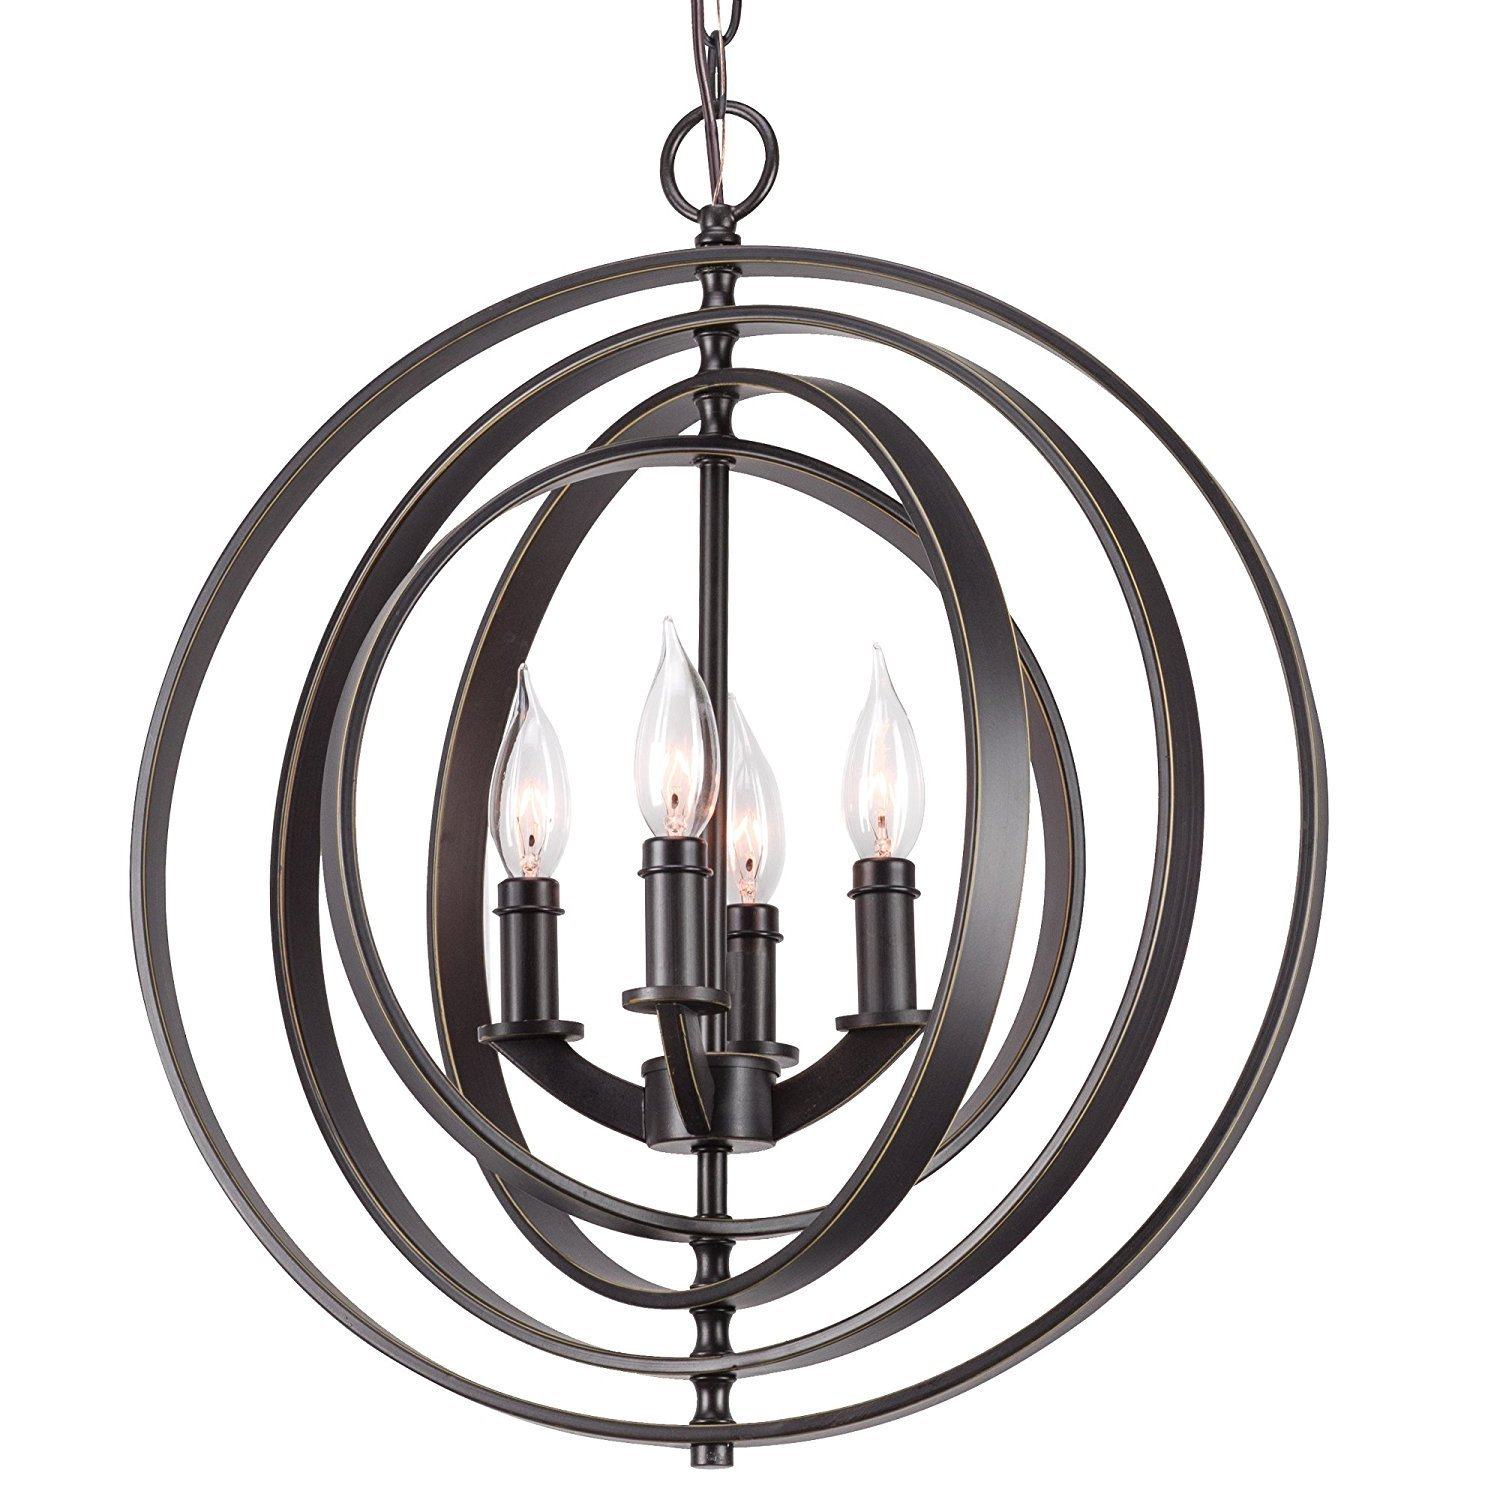 Kira Home Orbits 18'' 4-Light Modern Sphere/Orb Chandelier, Bronze Finish